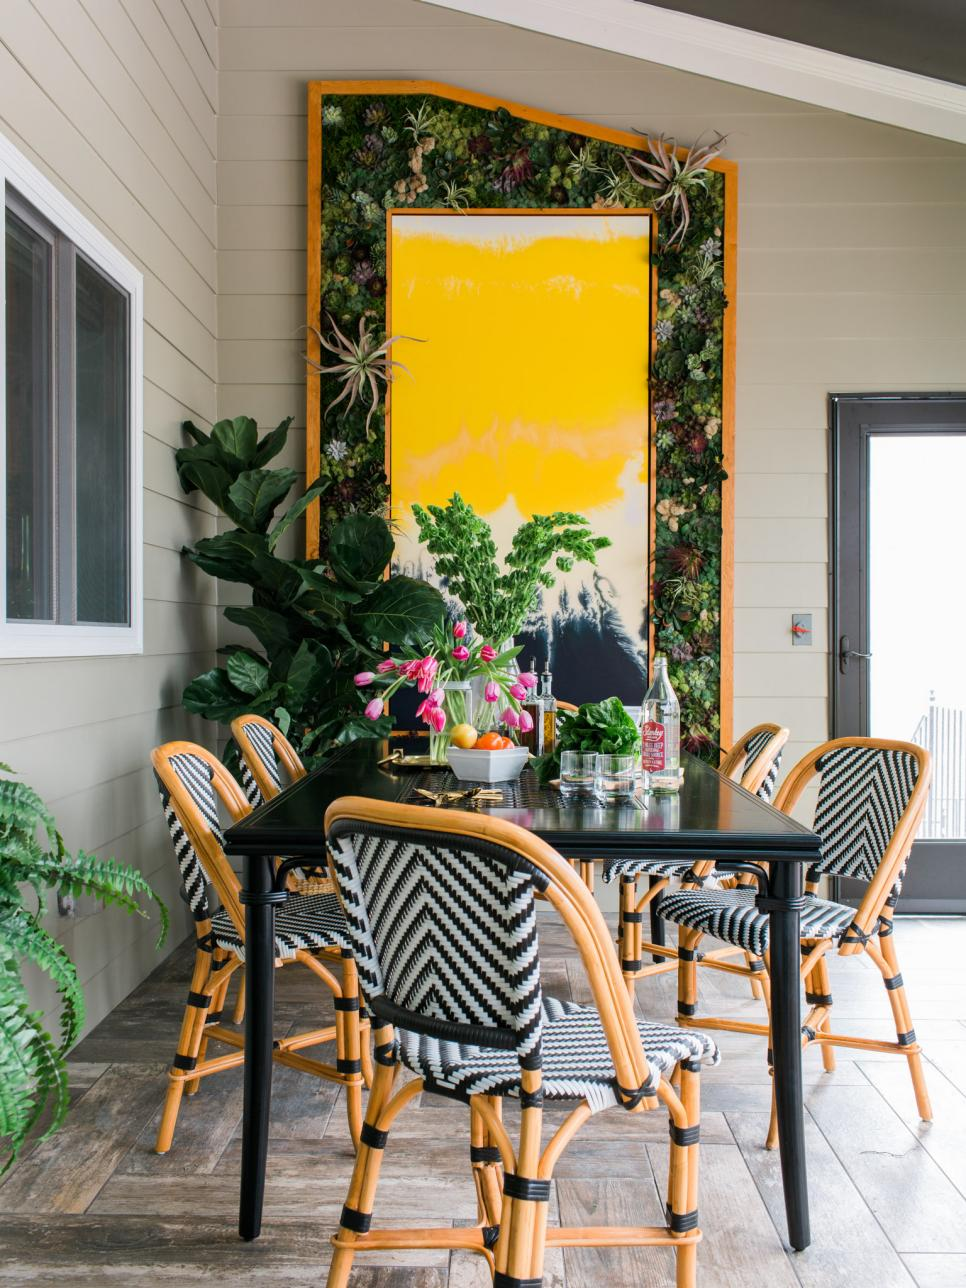 The Living Wall with plants takes up the entire back wall of the screened porch, and frames black, white and yellow abstract art .| Photo by Tomas Espinoza